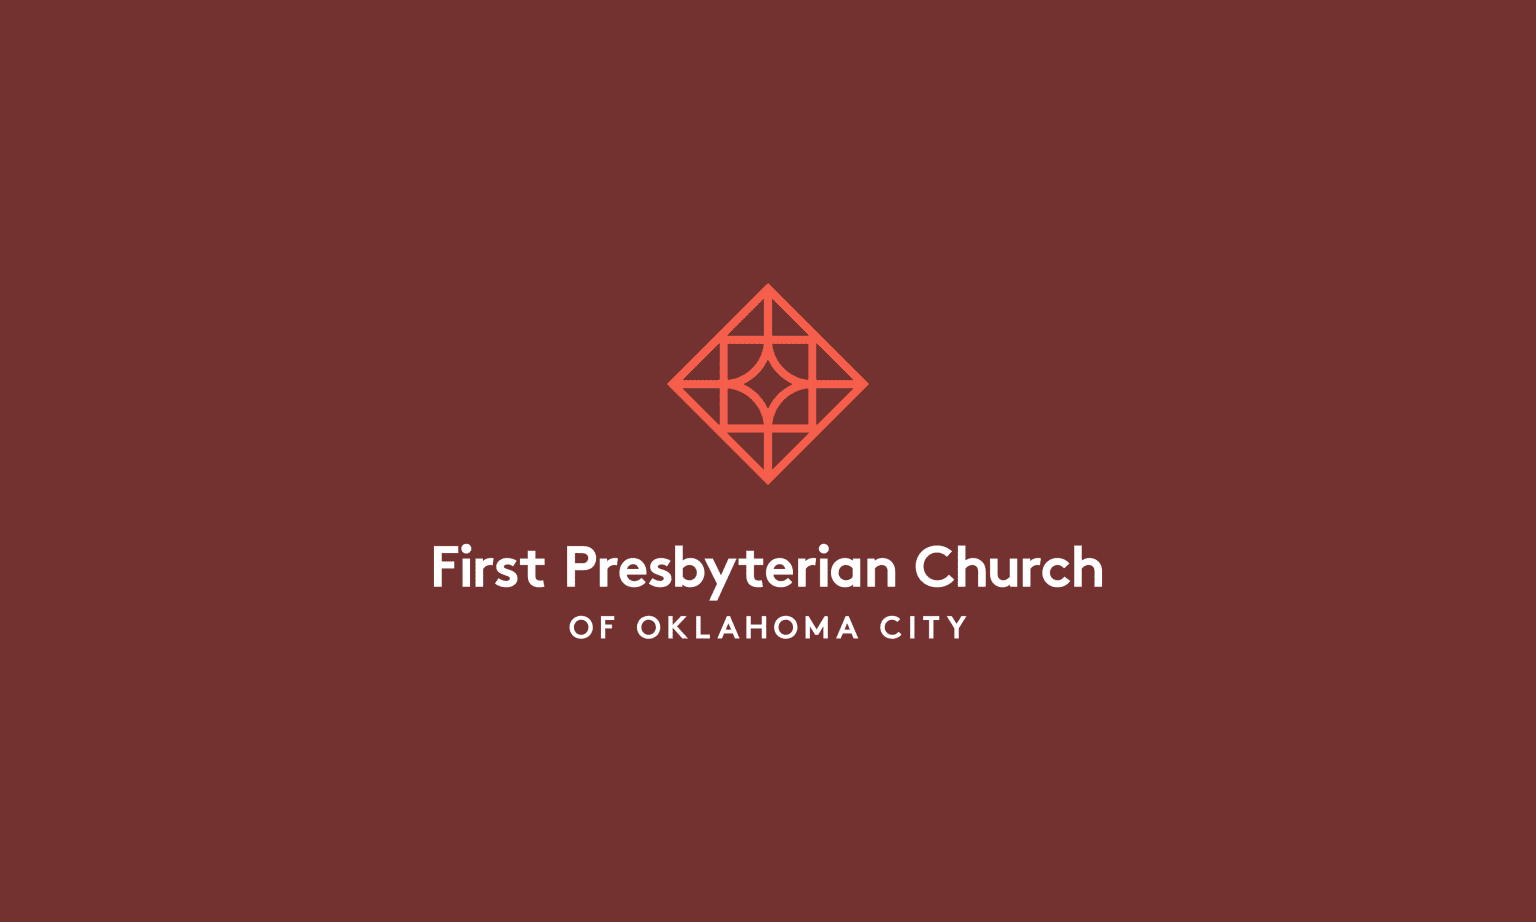 First Presbyterian Church of Oklahoma City